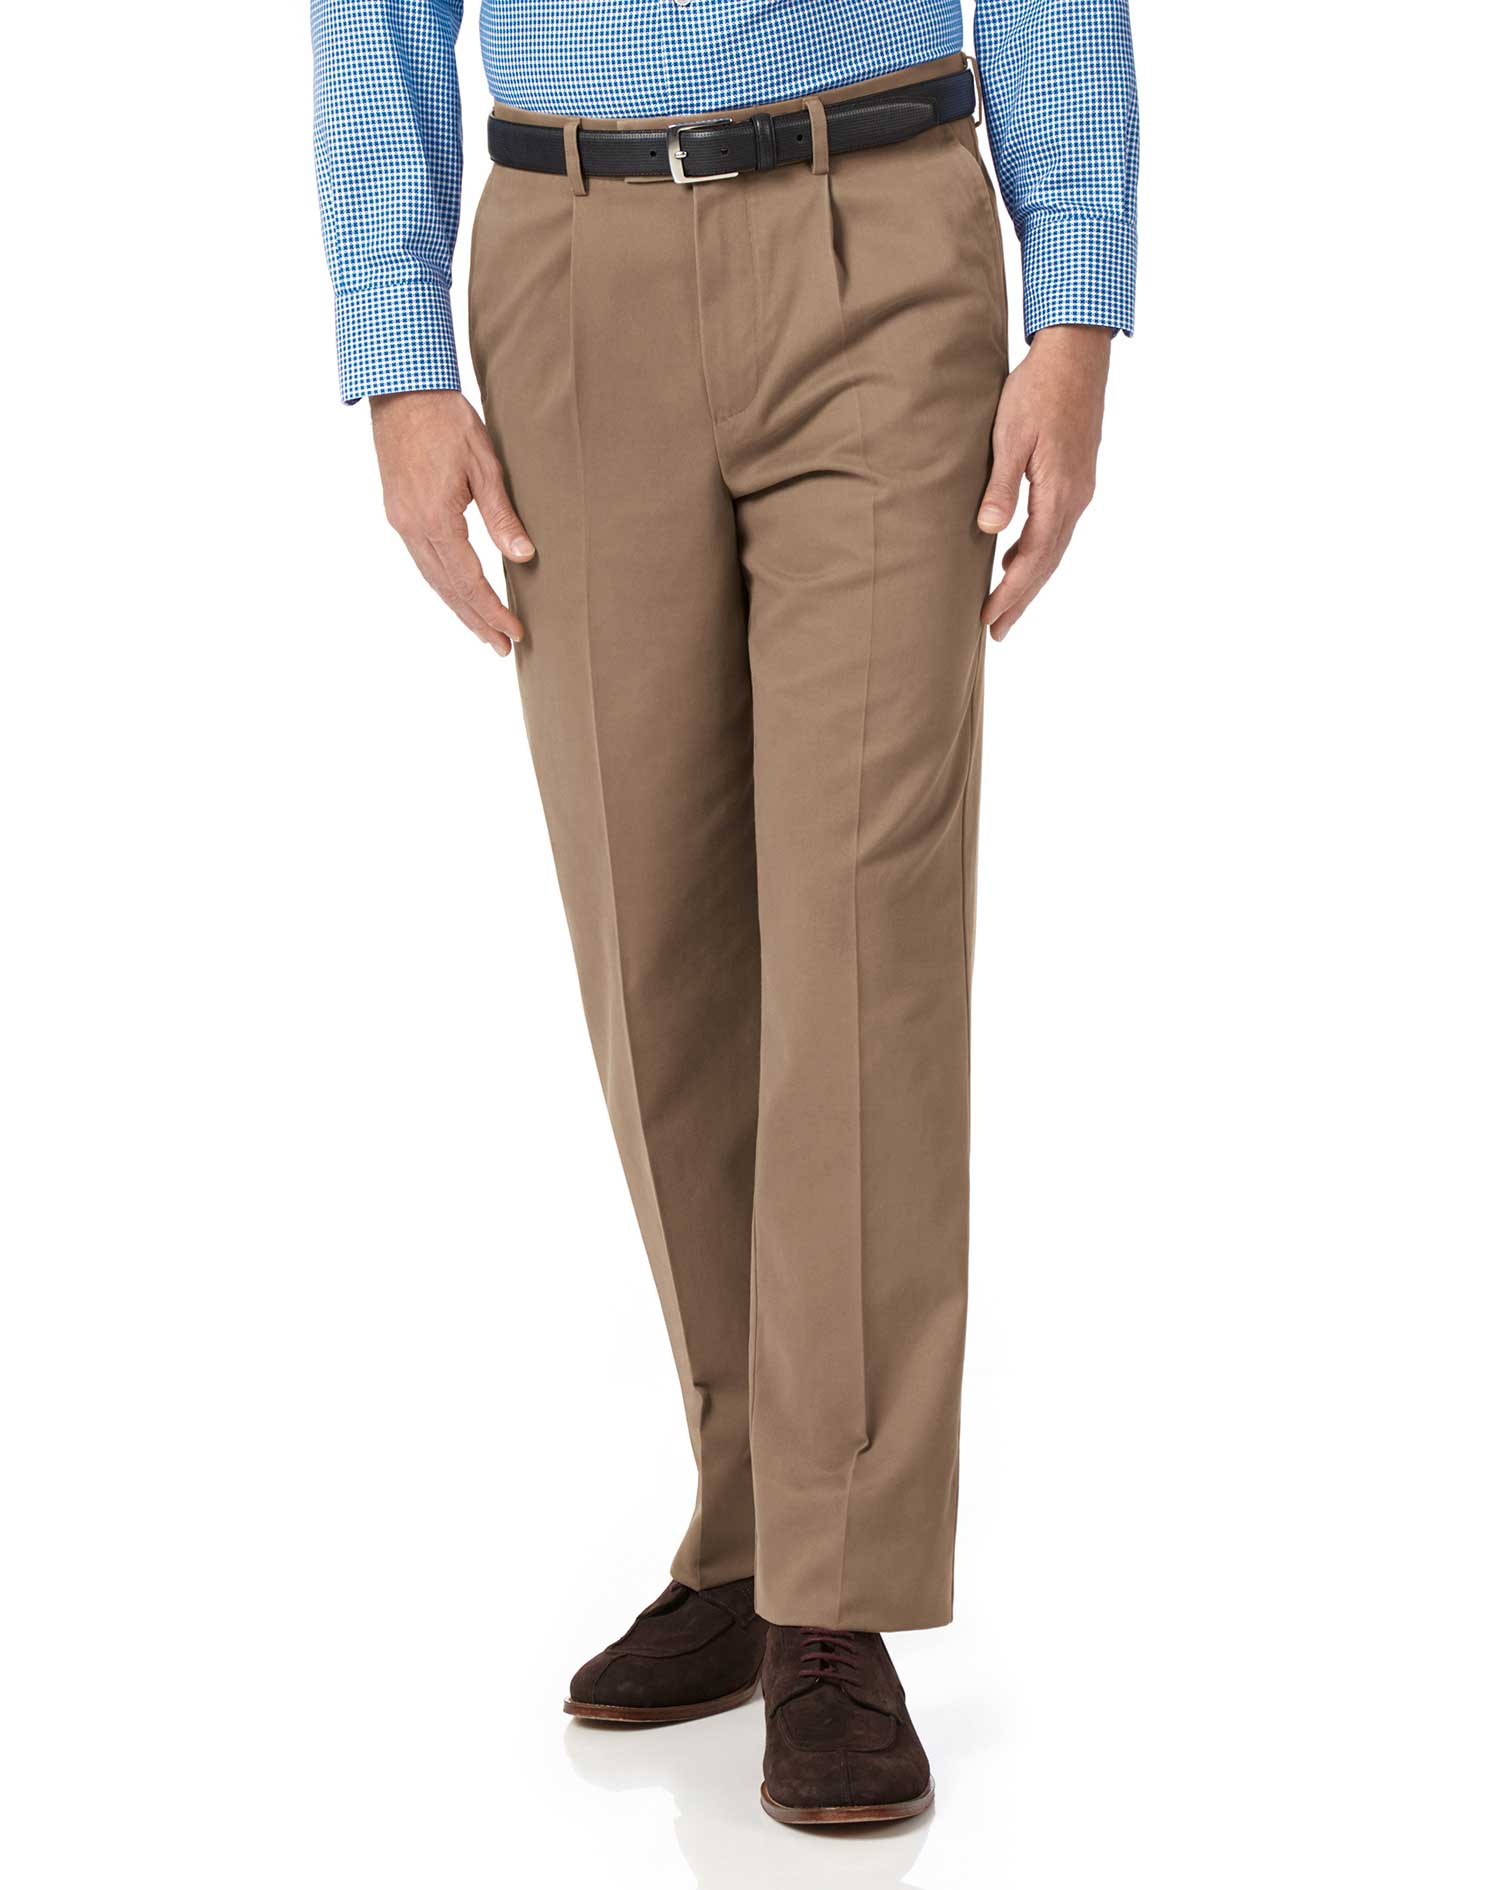 Tan Classic Fit Single Pleat Non-Iron Cotton Chino Trousers Size W40 L38 by Charles Tyrwhitt